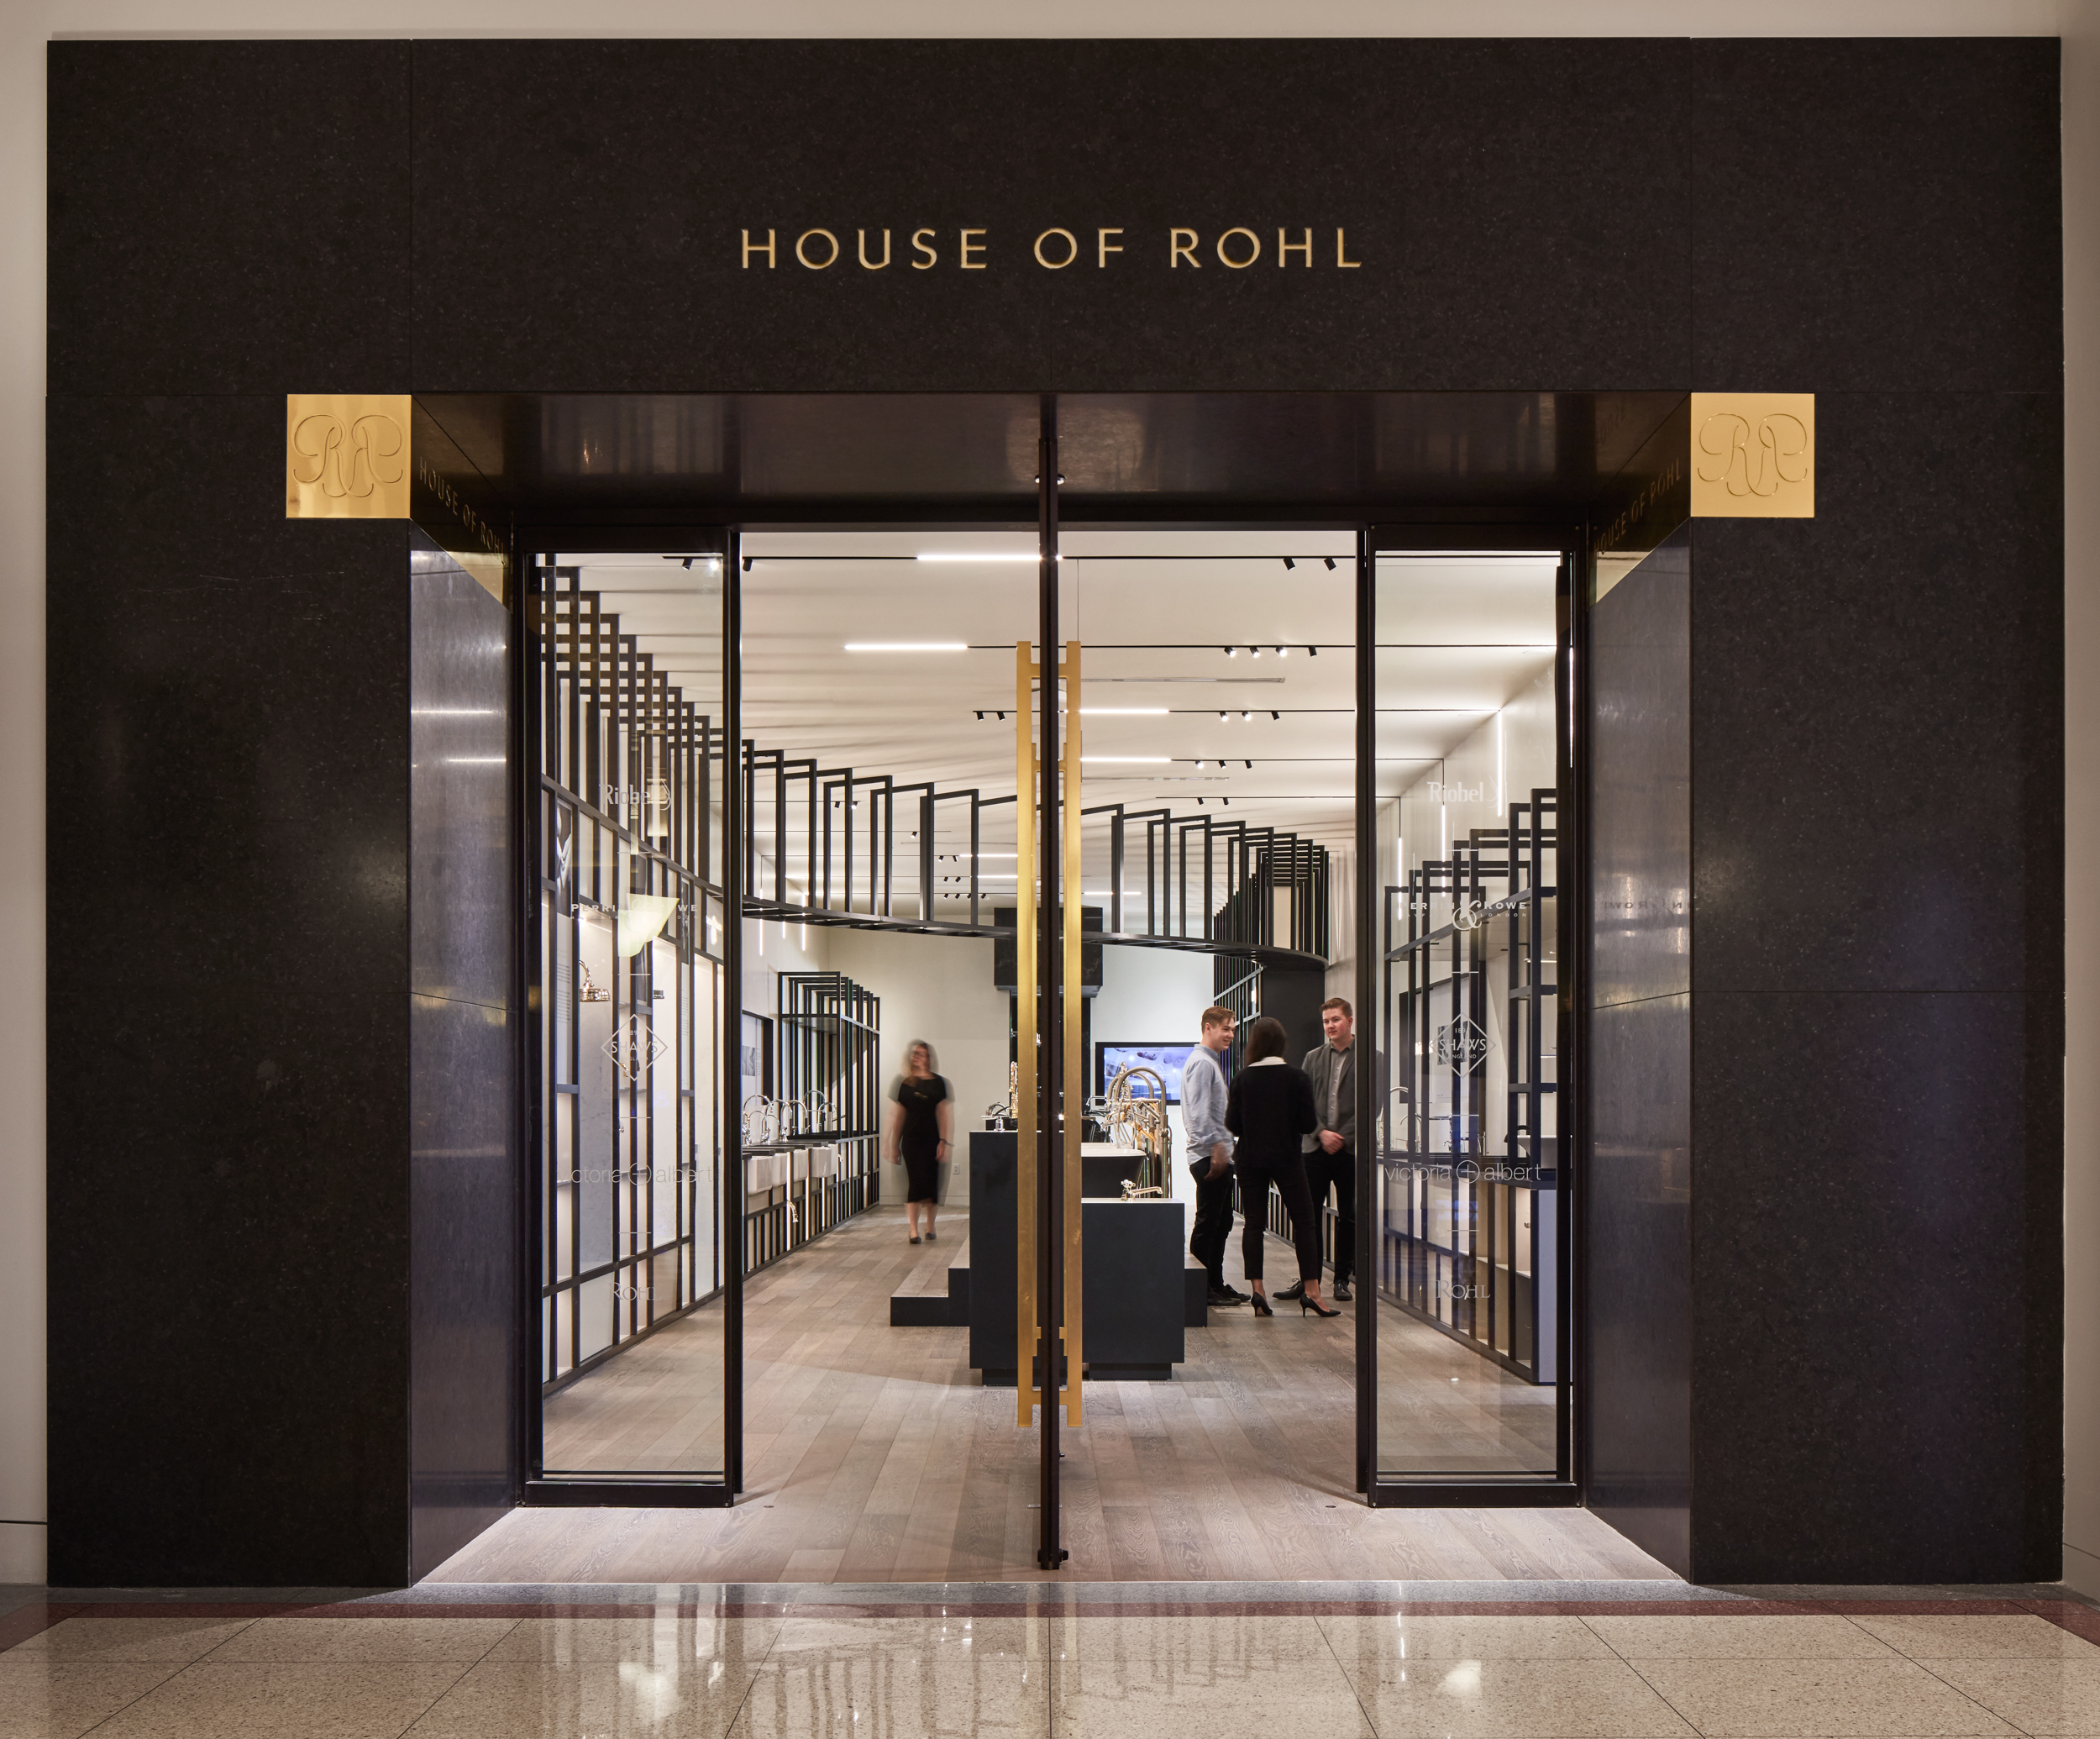 House of Rohl Storefront, by Tom Harris